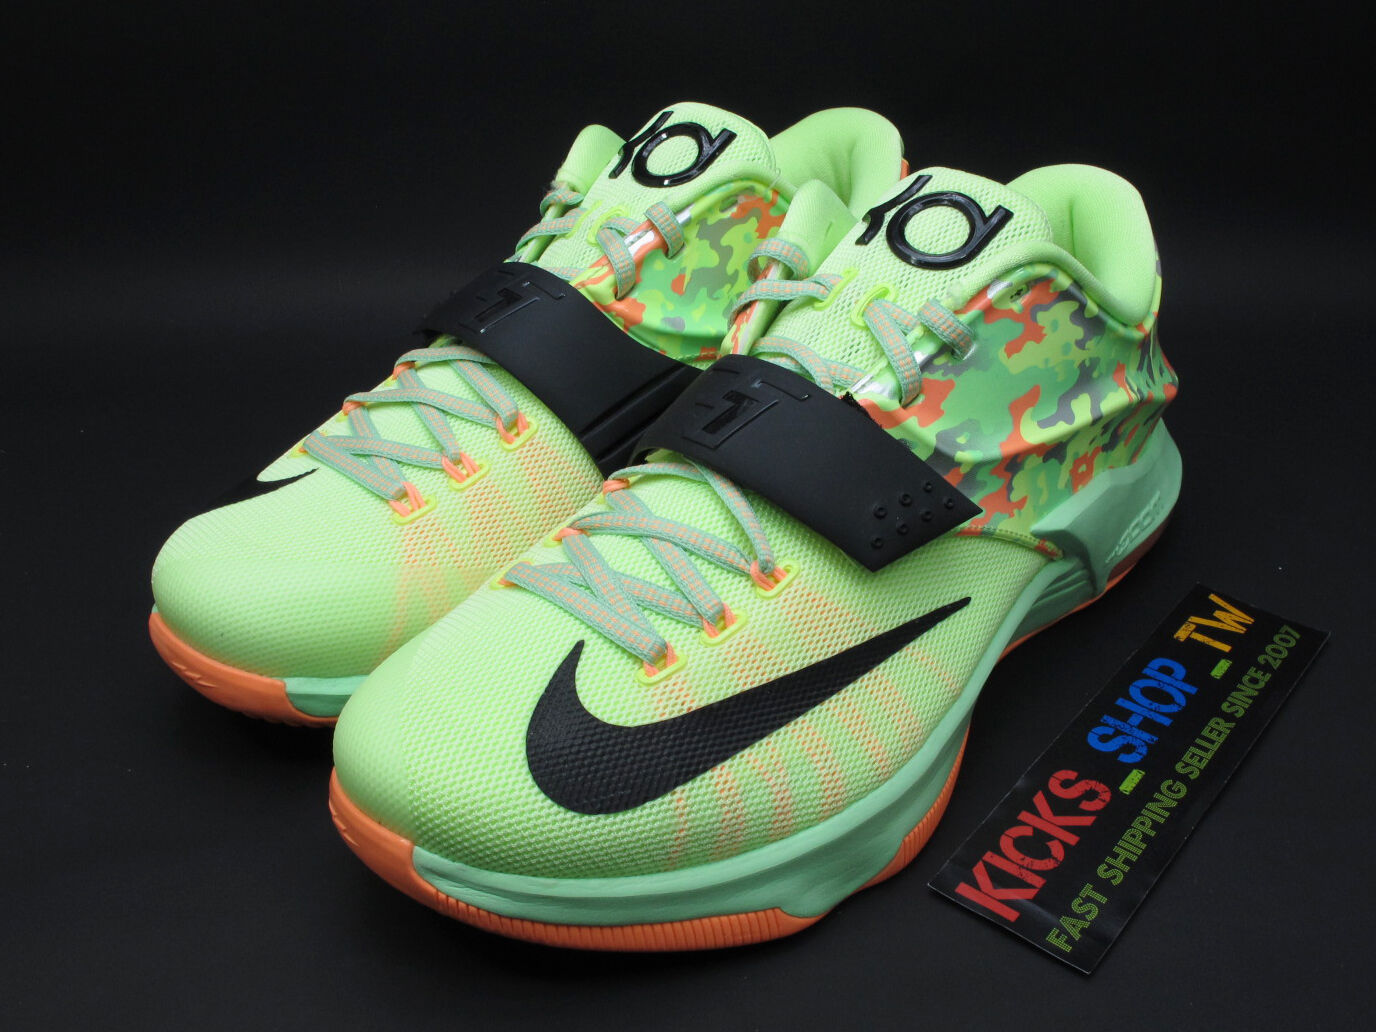 DS 2018 NIKE KD VII 7 EP EASTER LIQUID LIME 653997-304 KEVIN DURANT BASKETBALL best-selling model of the brand